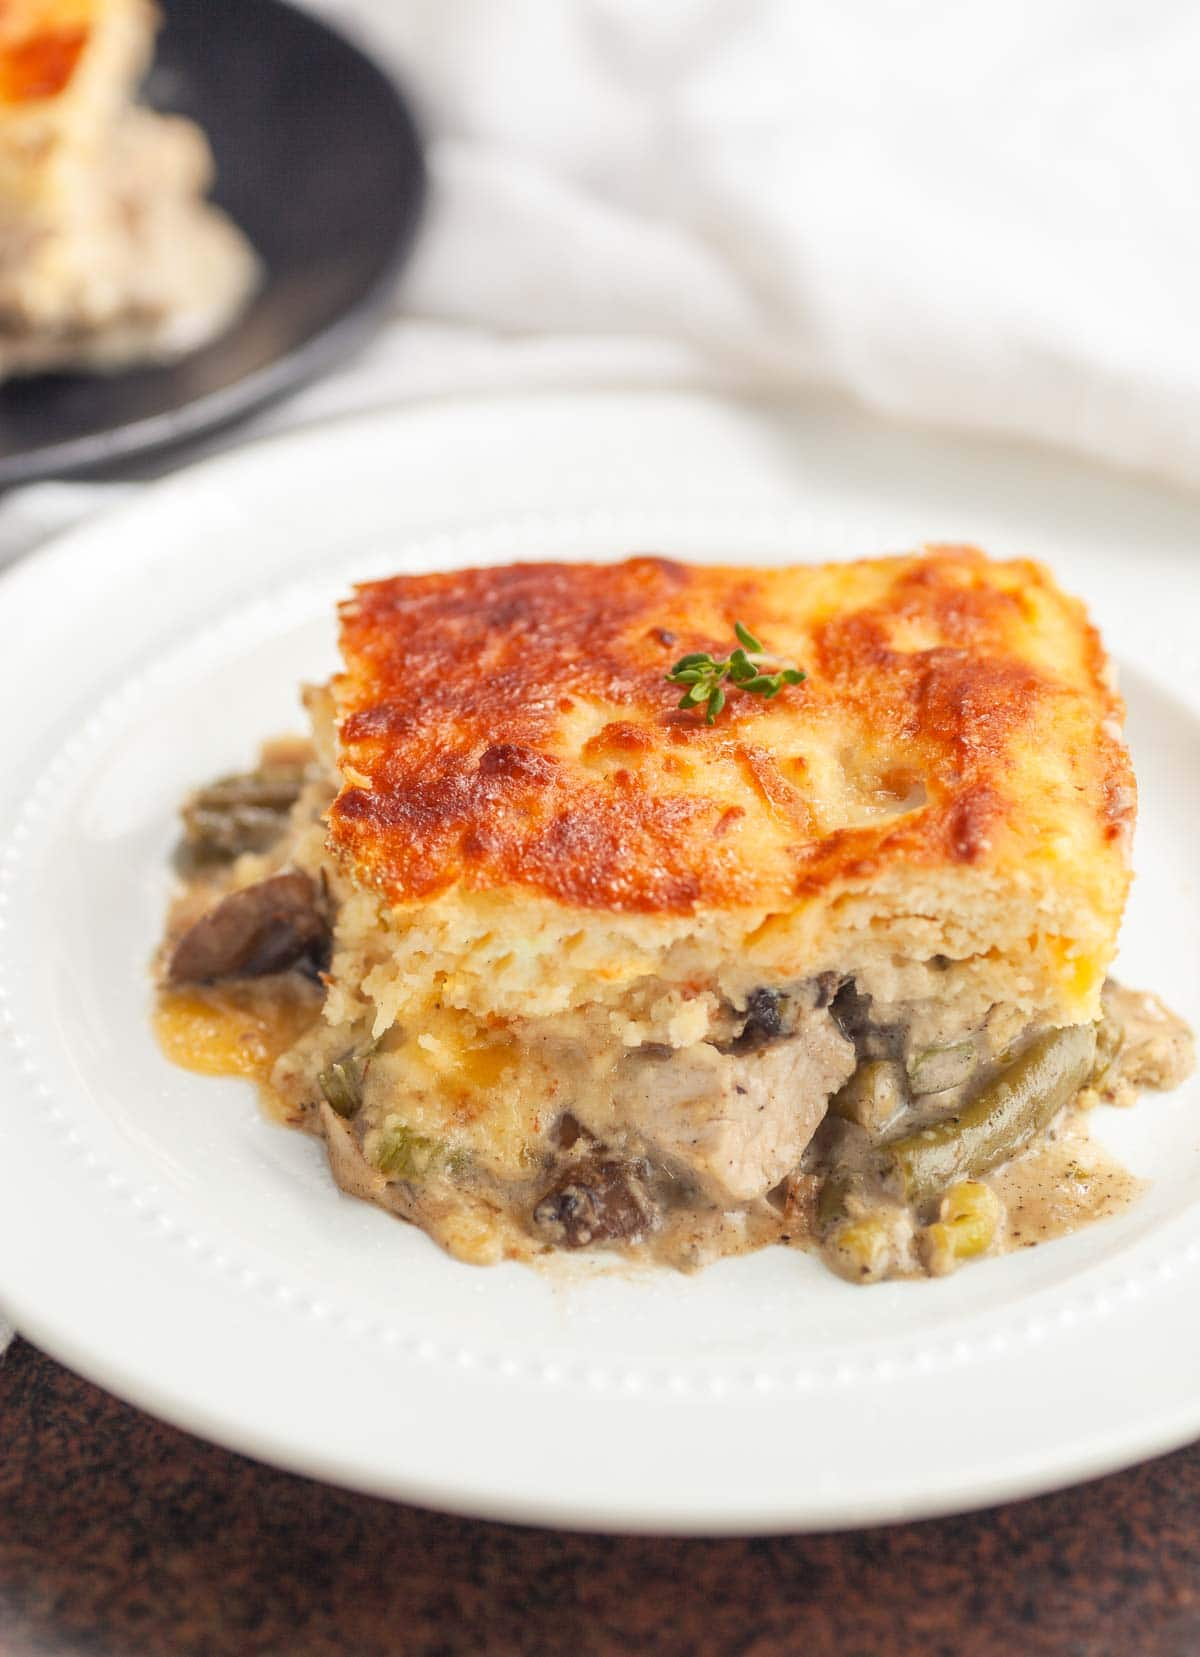 A slice of a chicken pot pie with a bacon biscuit crust.